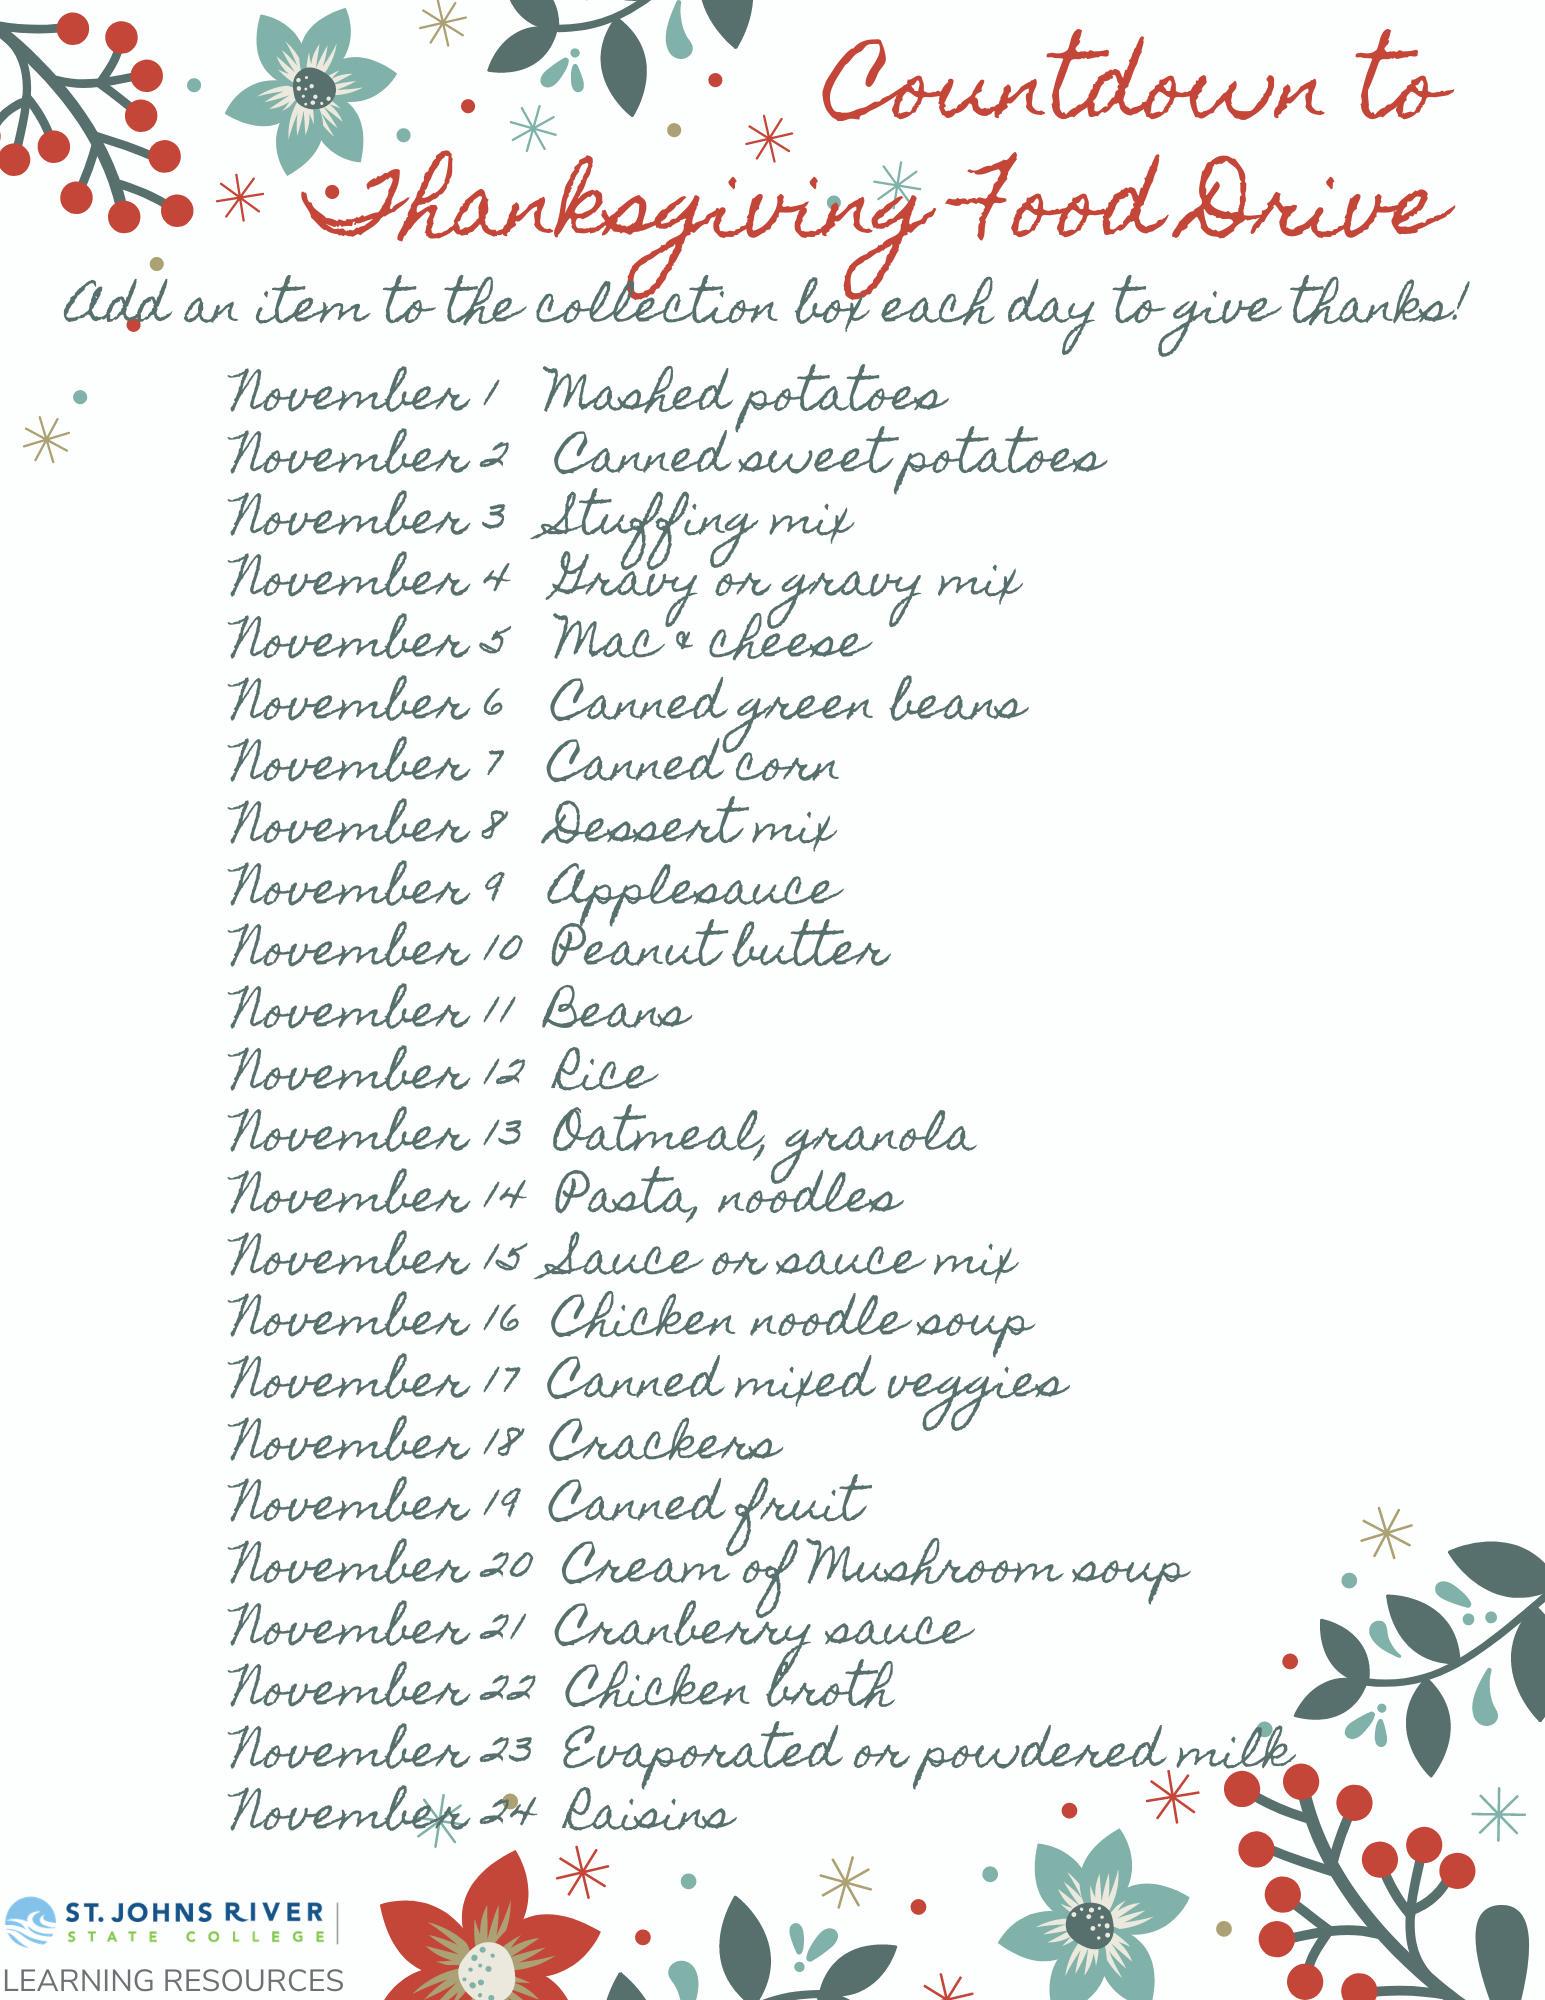 Food list - a pdf of this list is provided after a